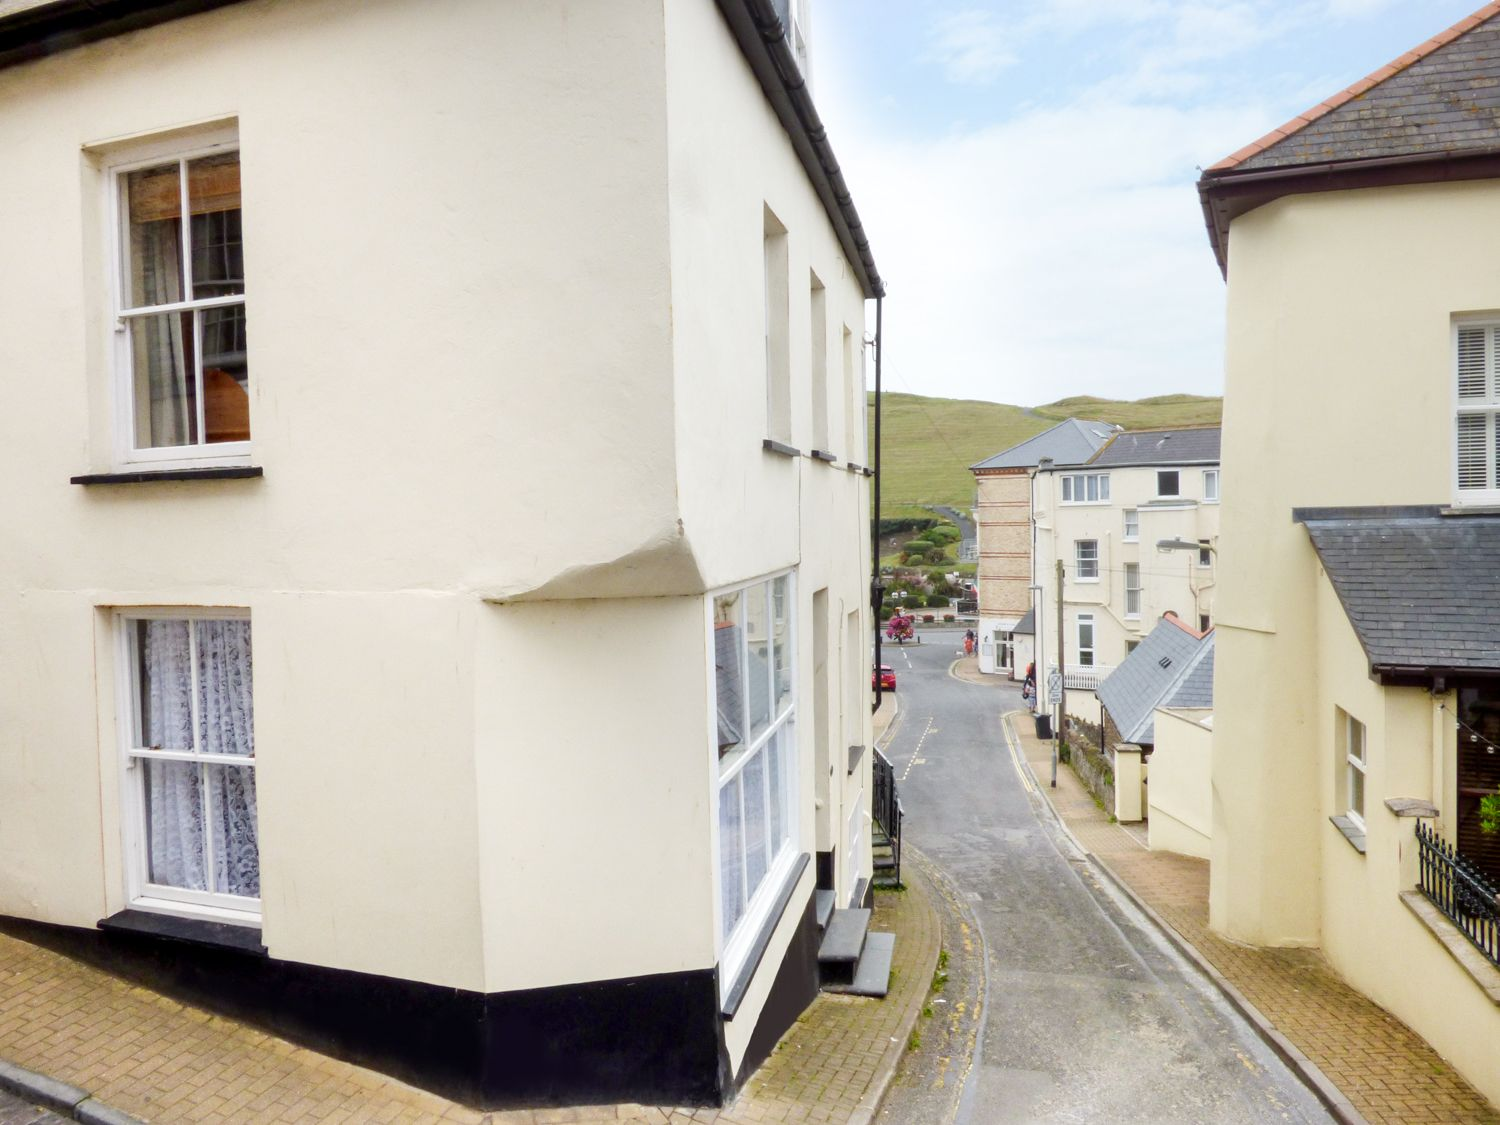 61 Fore Street - Devon - 947994 - photo 1